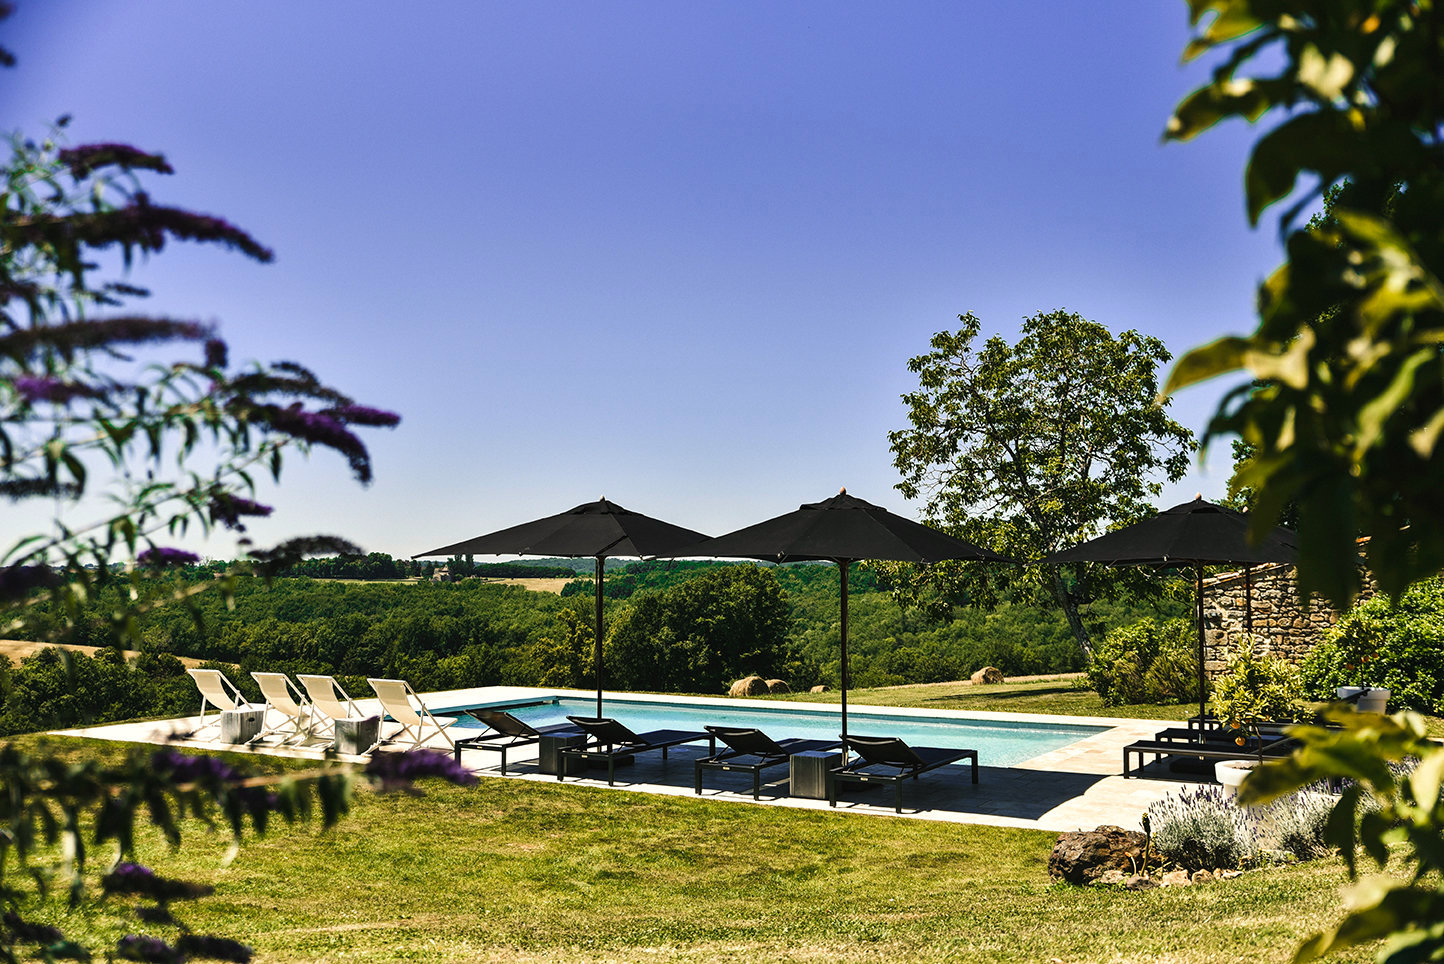 Family vacation rental in the Dordogne with saltwater swimming pool in the middle of the countryside with black sun loungers and parasols